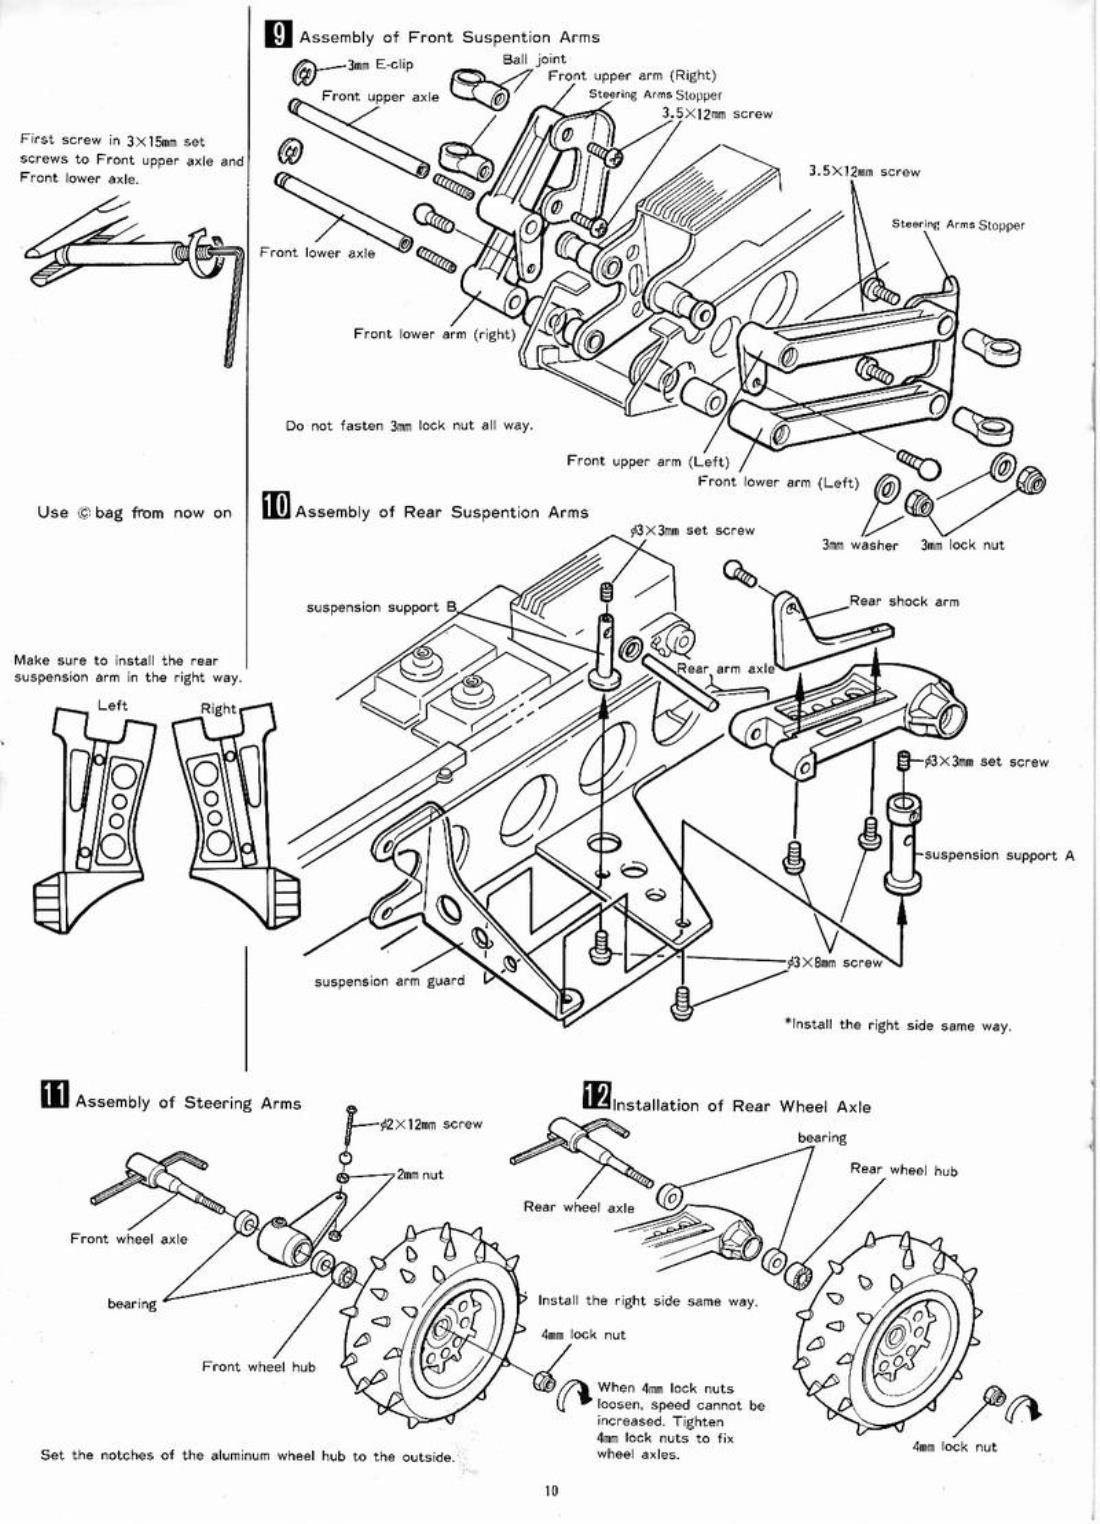 Ayk From Spike Showroom Ayk Viper Assembly Manual Scan Part 1 Of 2